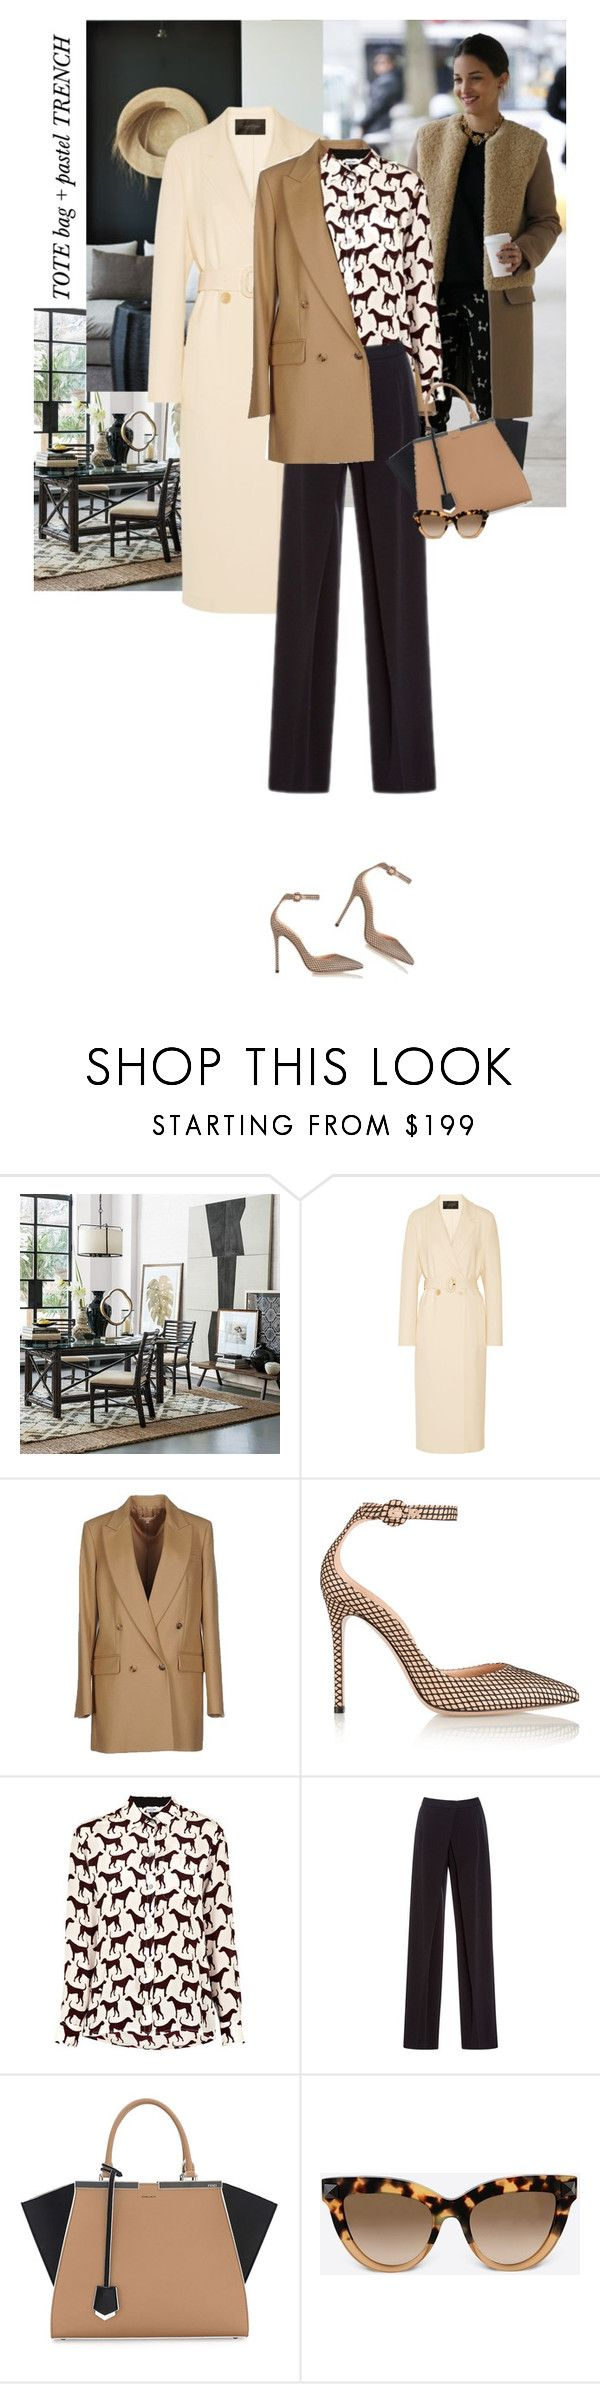 """""""Only do what your heart tells you. Princess Diana"""" by hil4ry ❤ liked on Polyvore featuring Williams-Sonoma, Calvin Klein Collection, Michael Kors, Gianvito Rossi, Mercy Delta, Alberta Ferretti, Fendi, Valentino, women's clothing and women's fashion"""